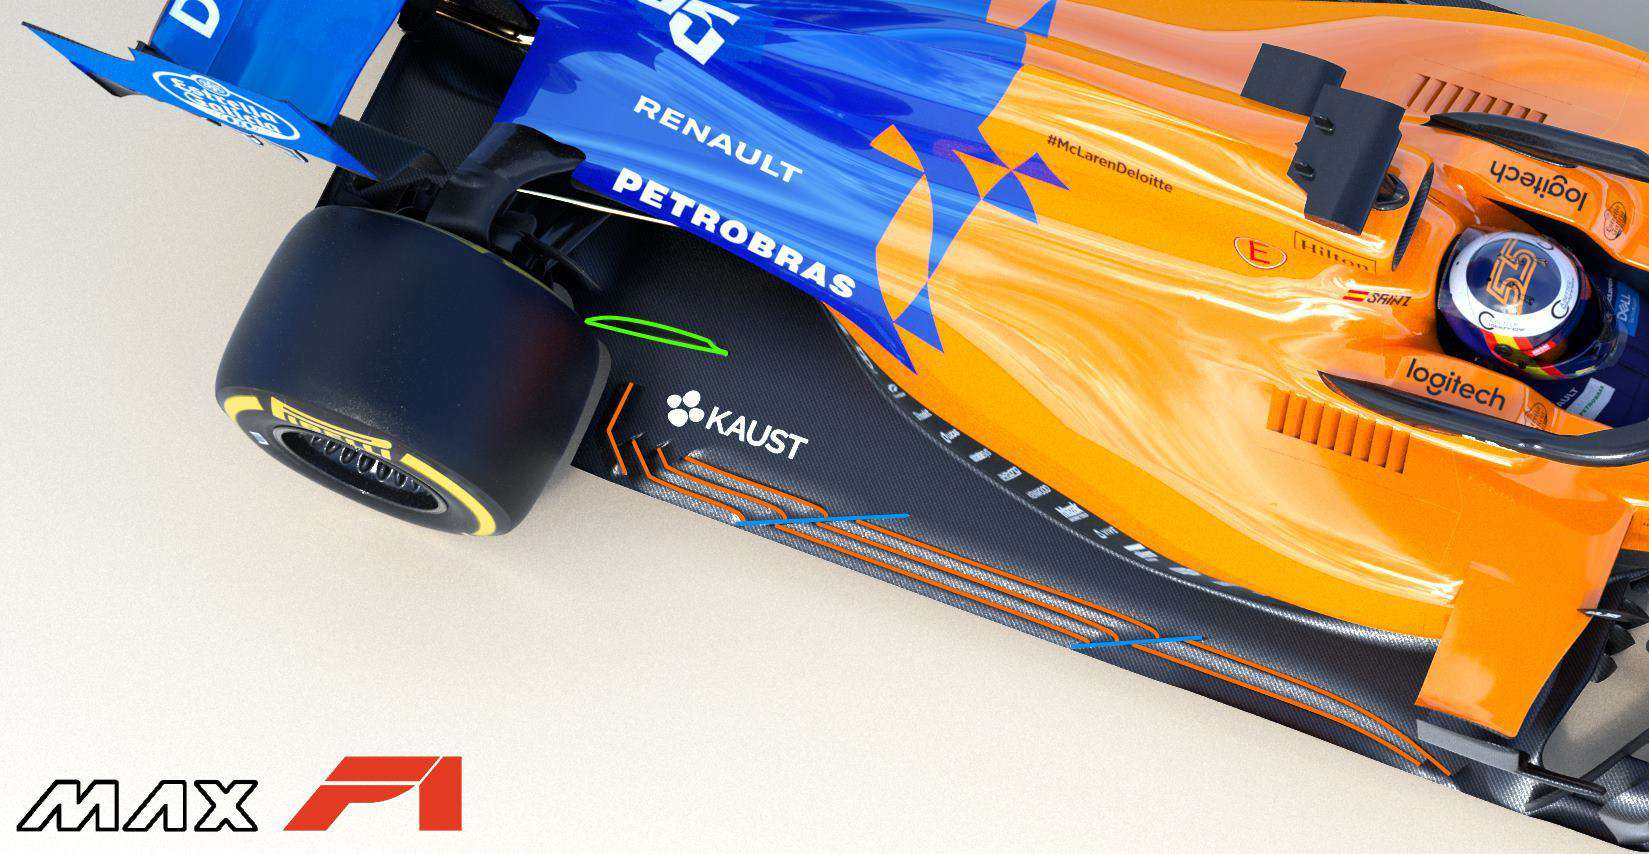 2019 McLaren MCL34 rear end floor details Photo McLaren Edited by MAXF1net